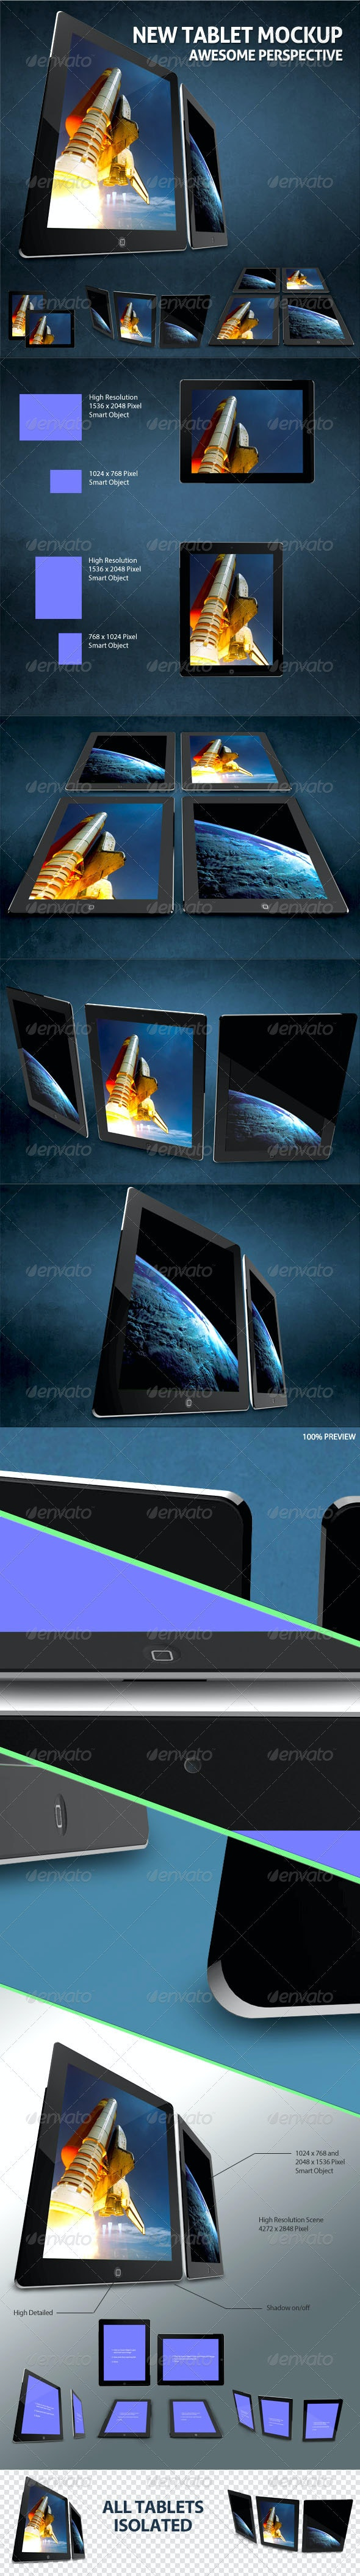 Photorealistic New Tablet Mock-ups - Mobile Displays